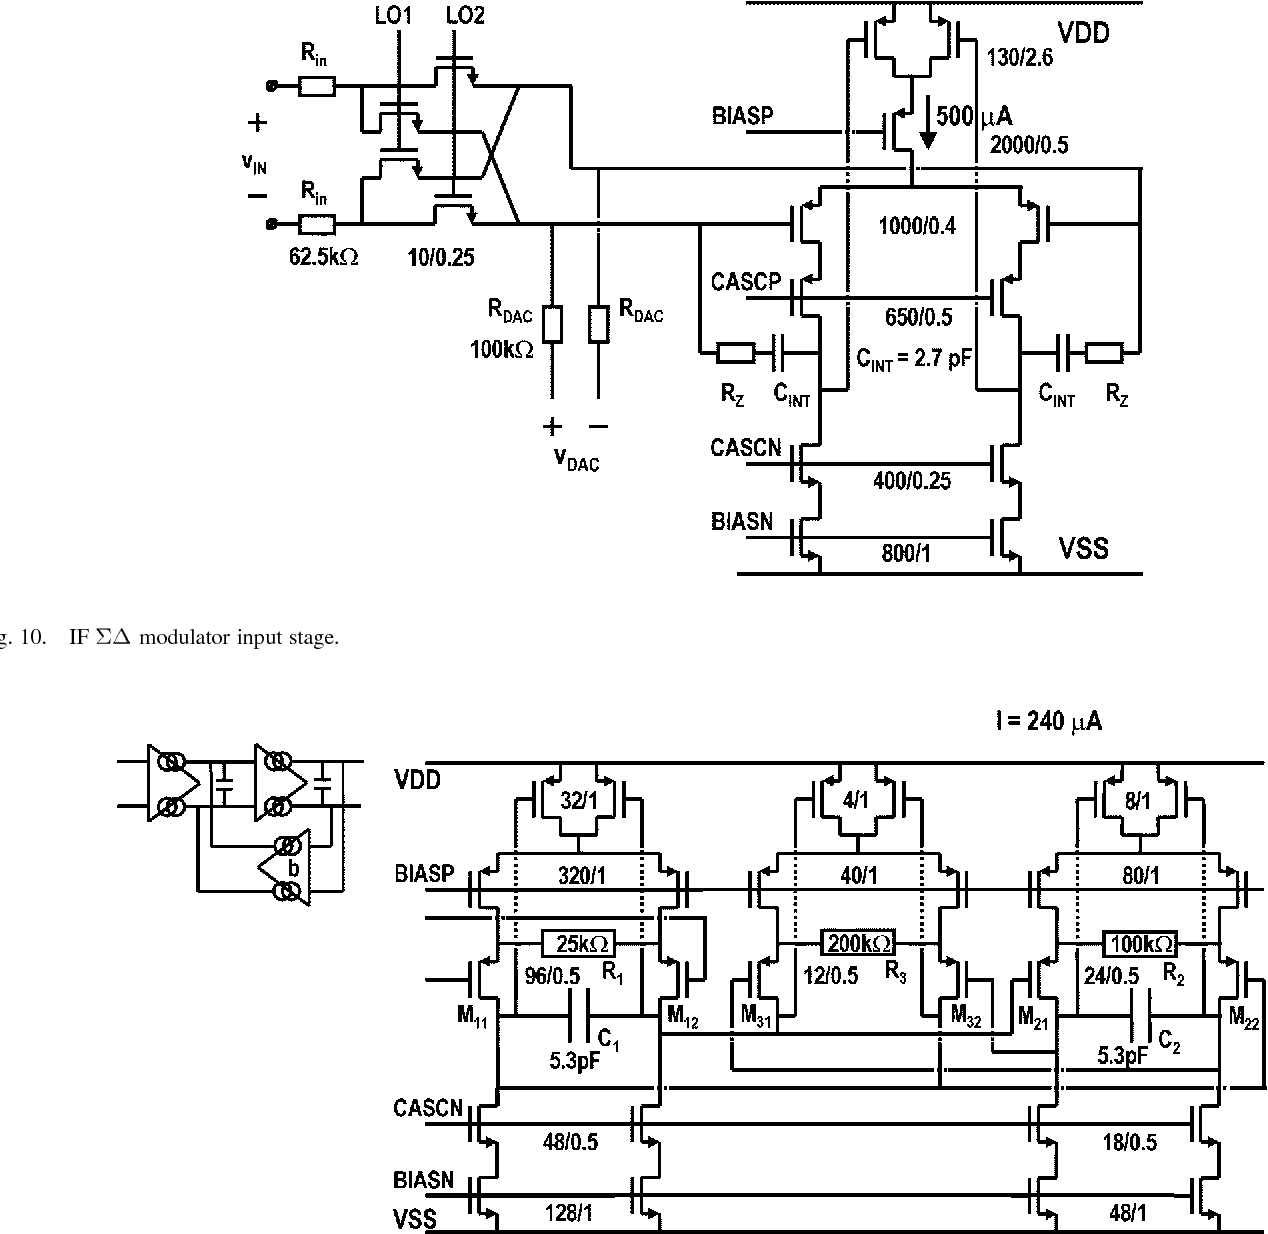 hight resolution of fig 10 if modulator input stage